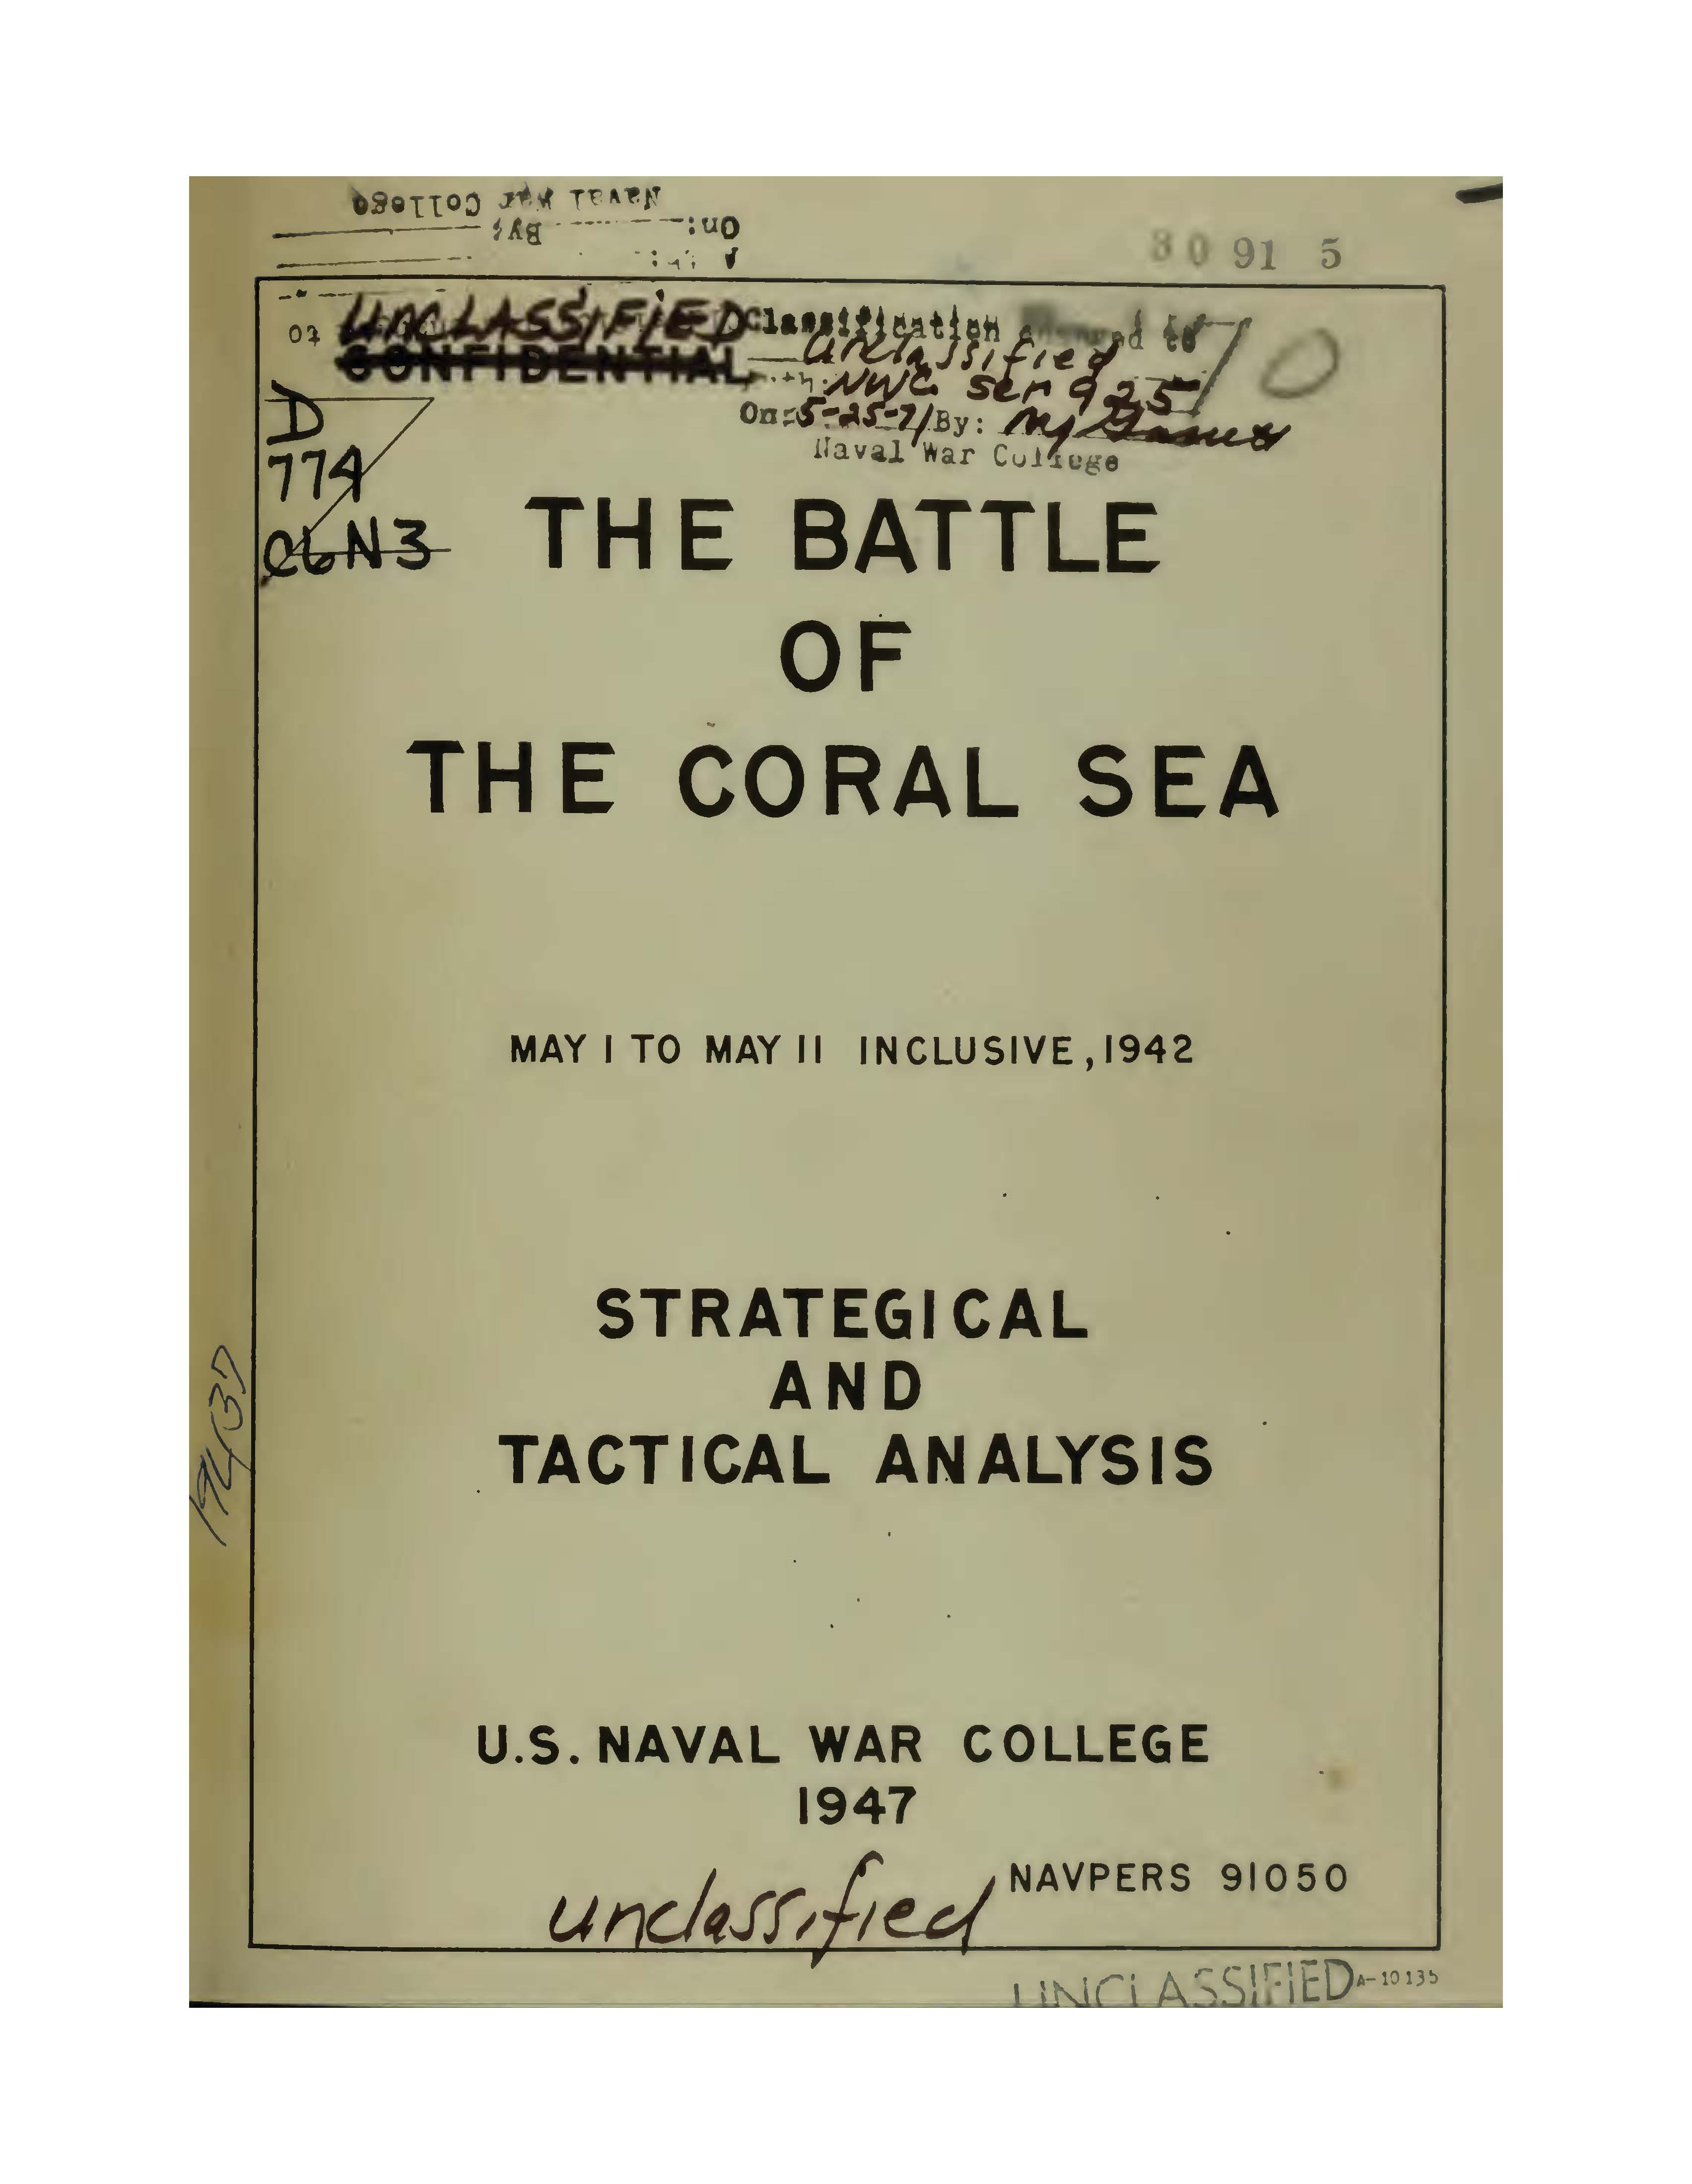 Battle of the Coral Sea, May 1 to May 11 inclusive, 1942: Strategical and Tactical Analysis, 1947